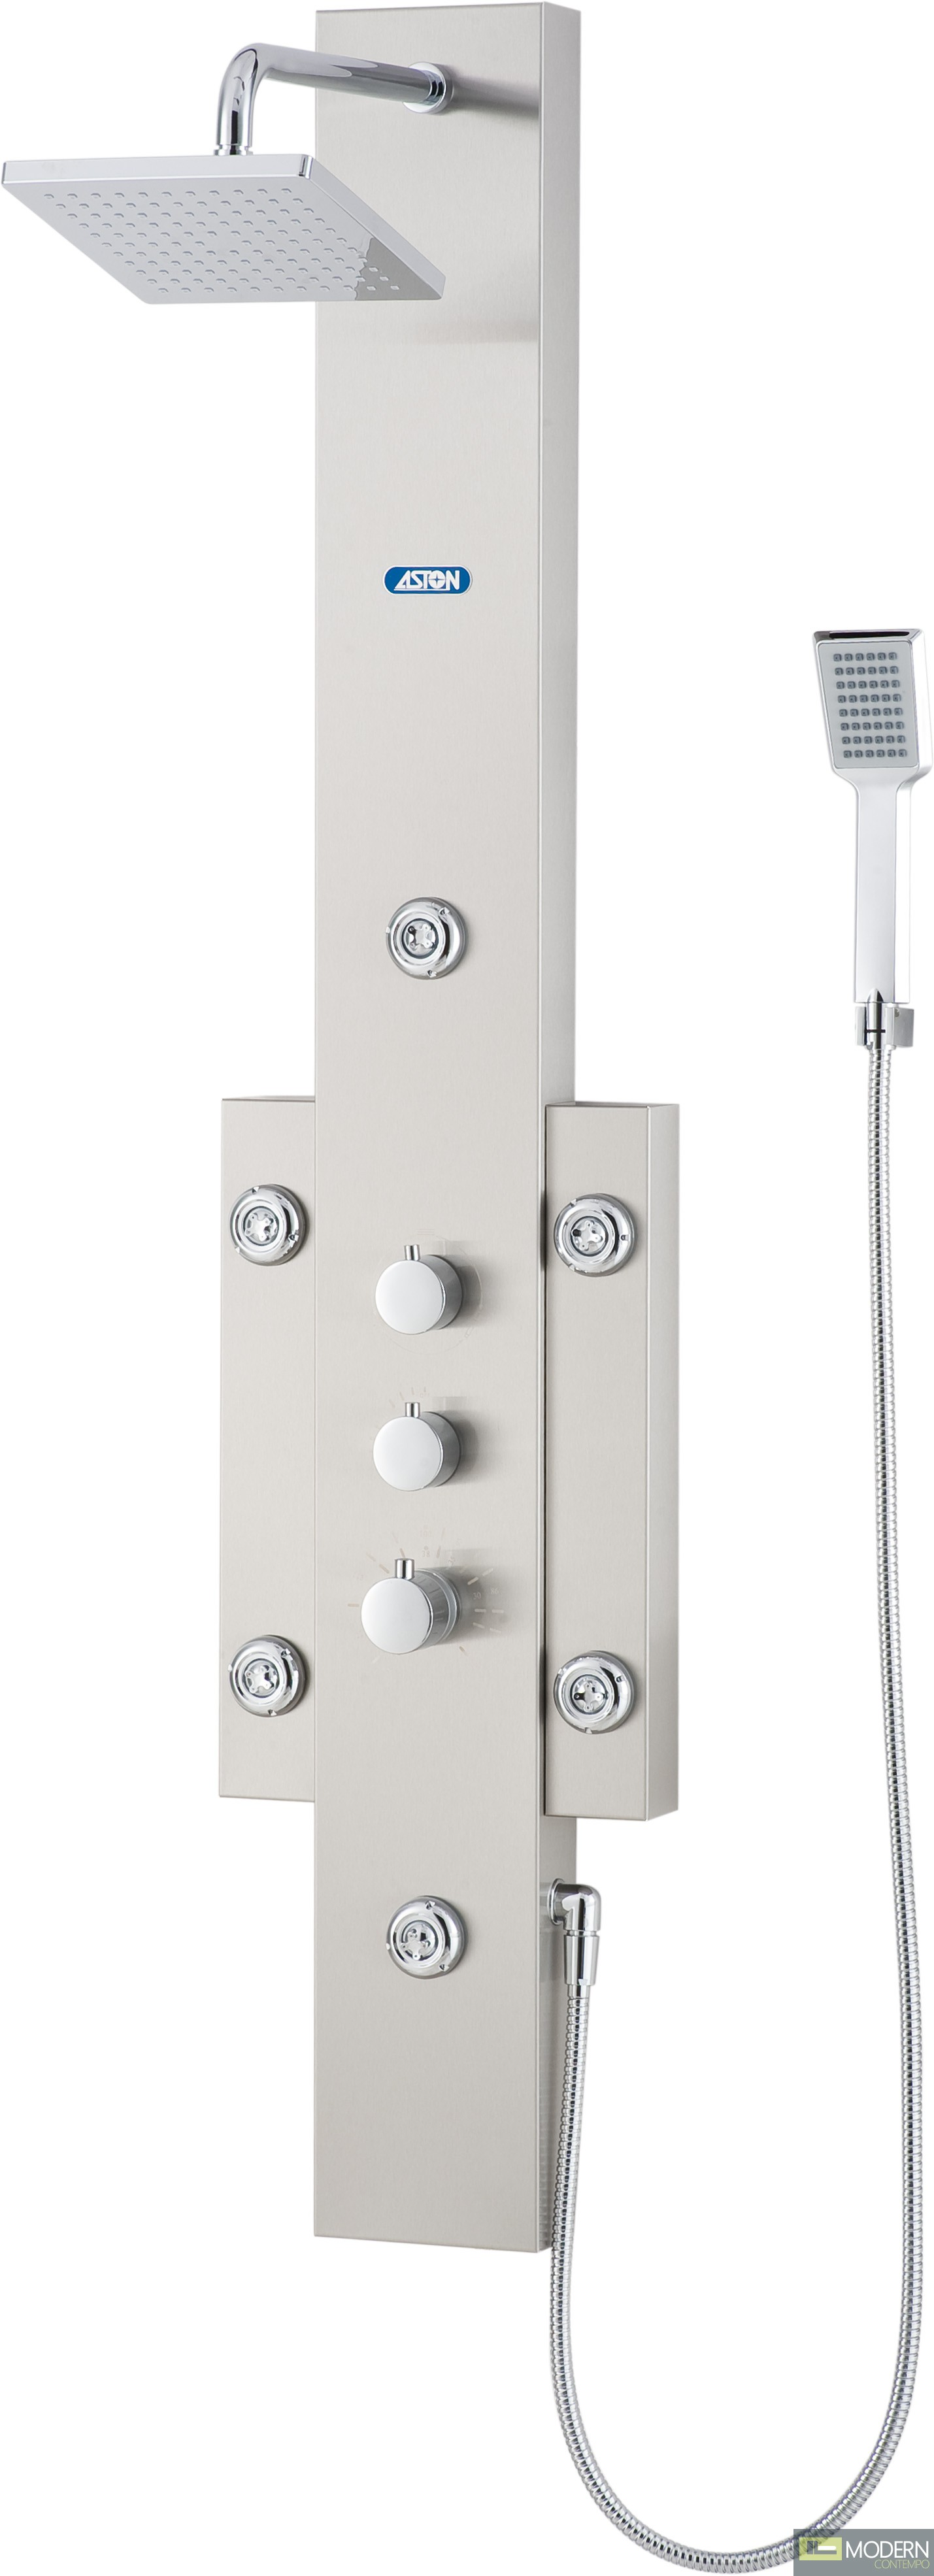 Shower Panel System with Six Body Jets in Stainless Steel